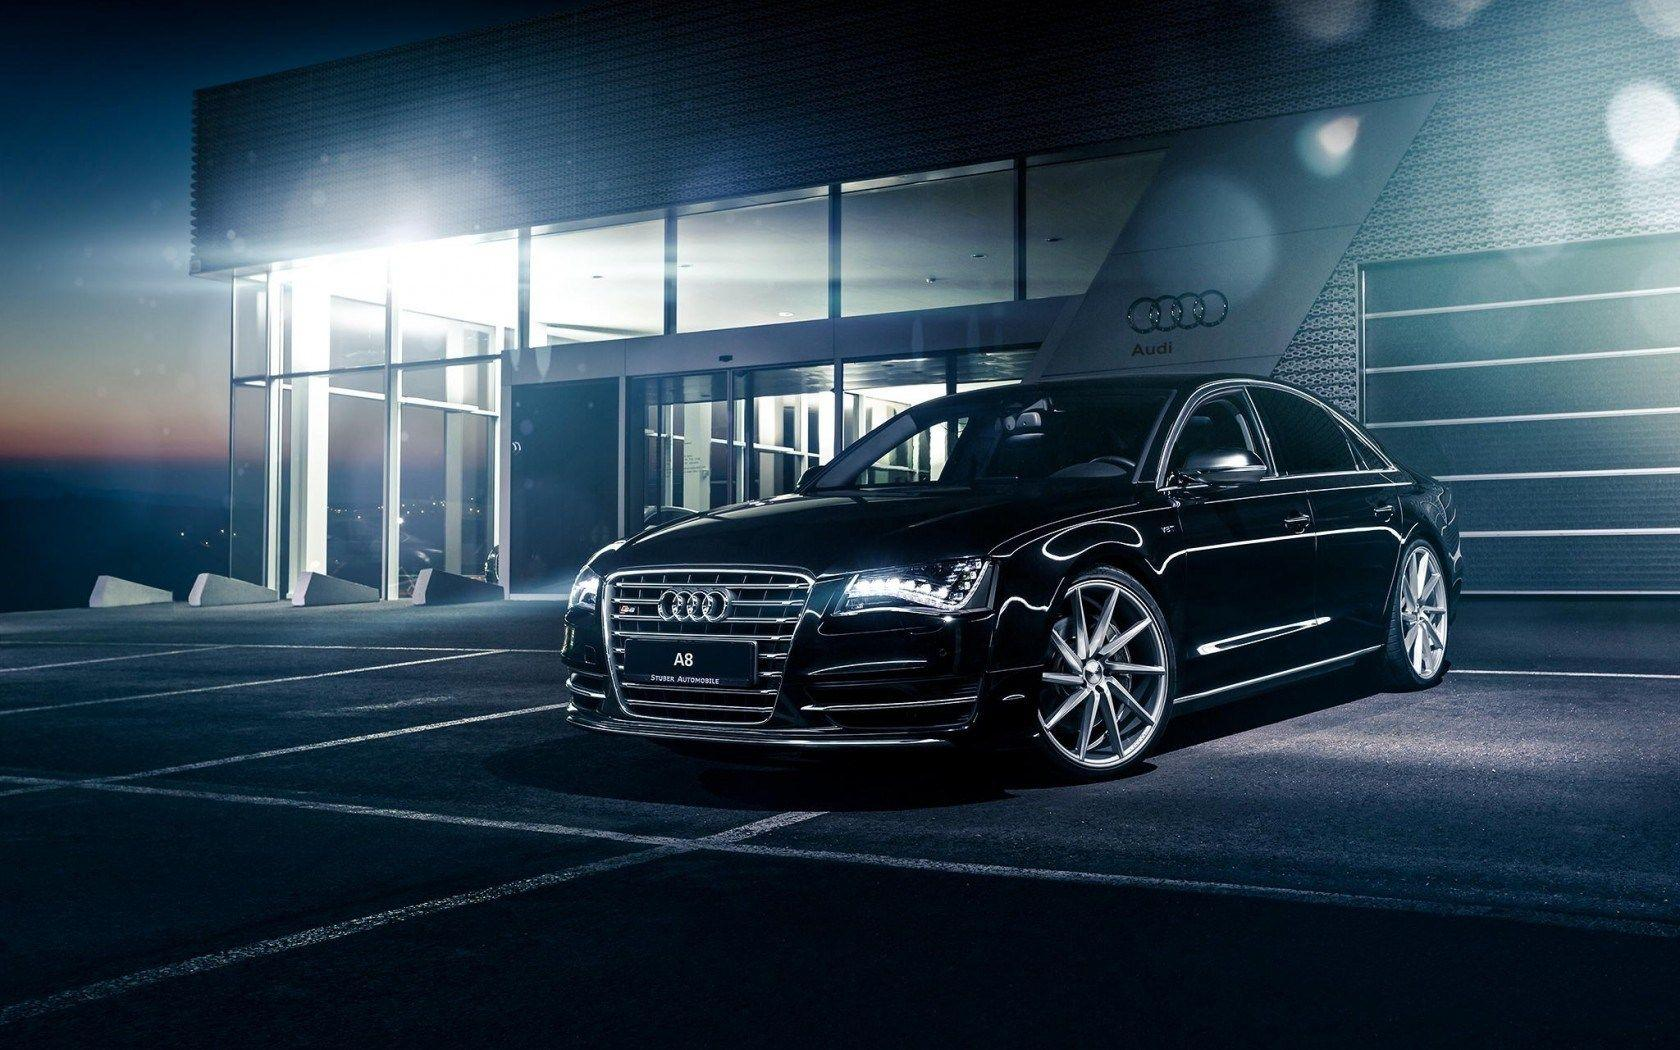 Audi A8 Wallpapers Top Free Audi A8 Backgrounds Wallpaperaccess